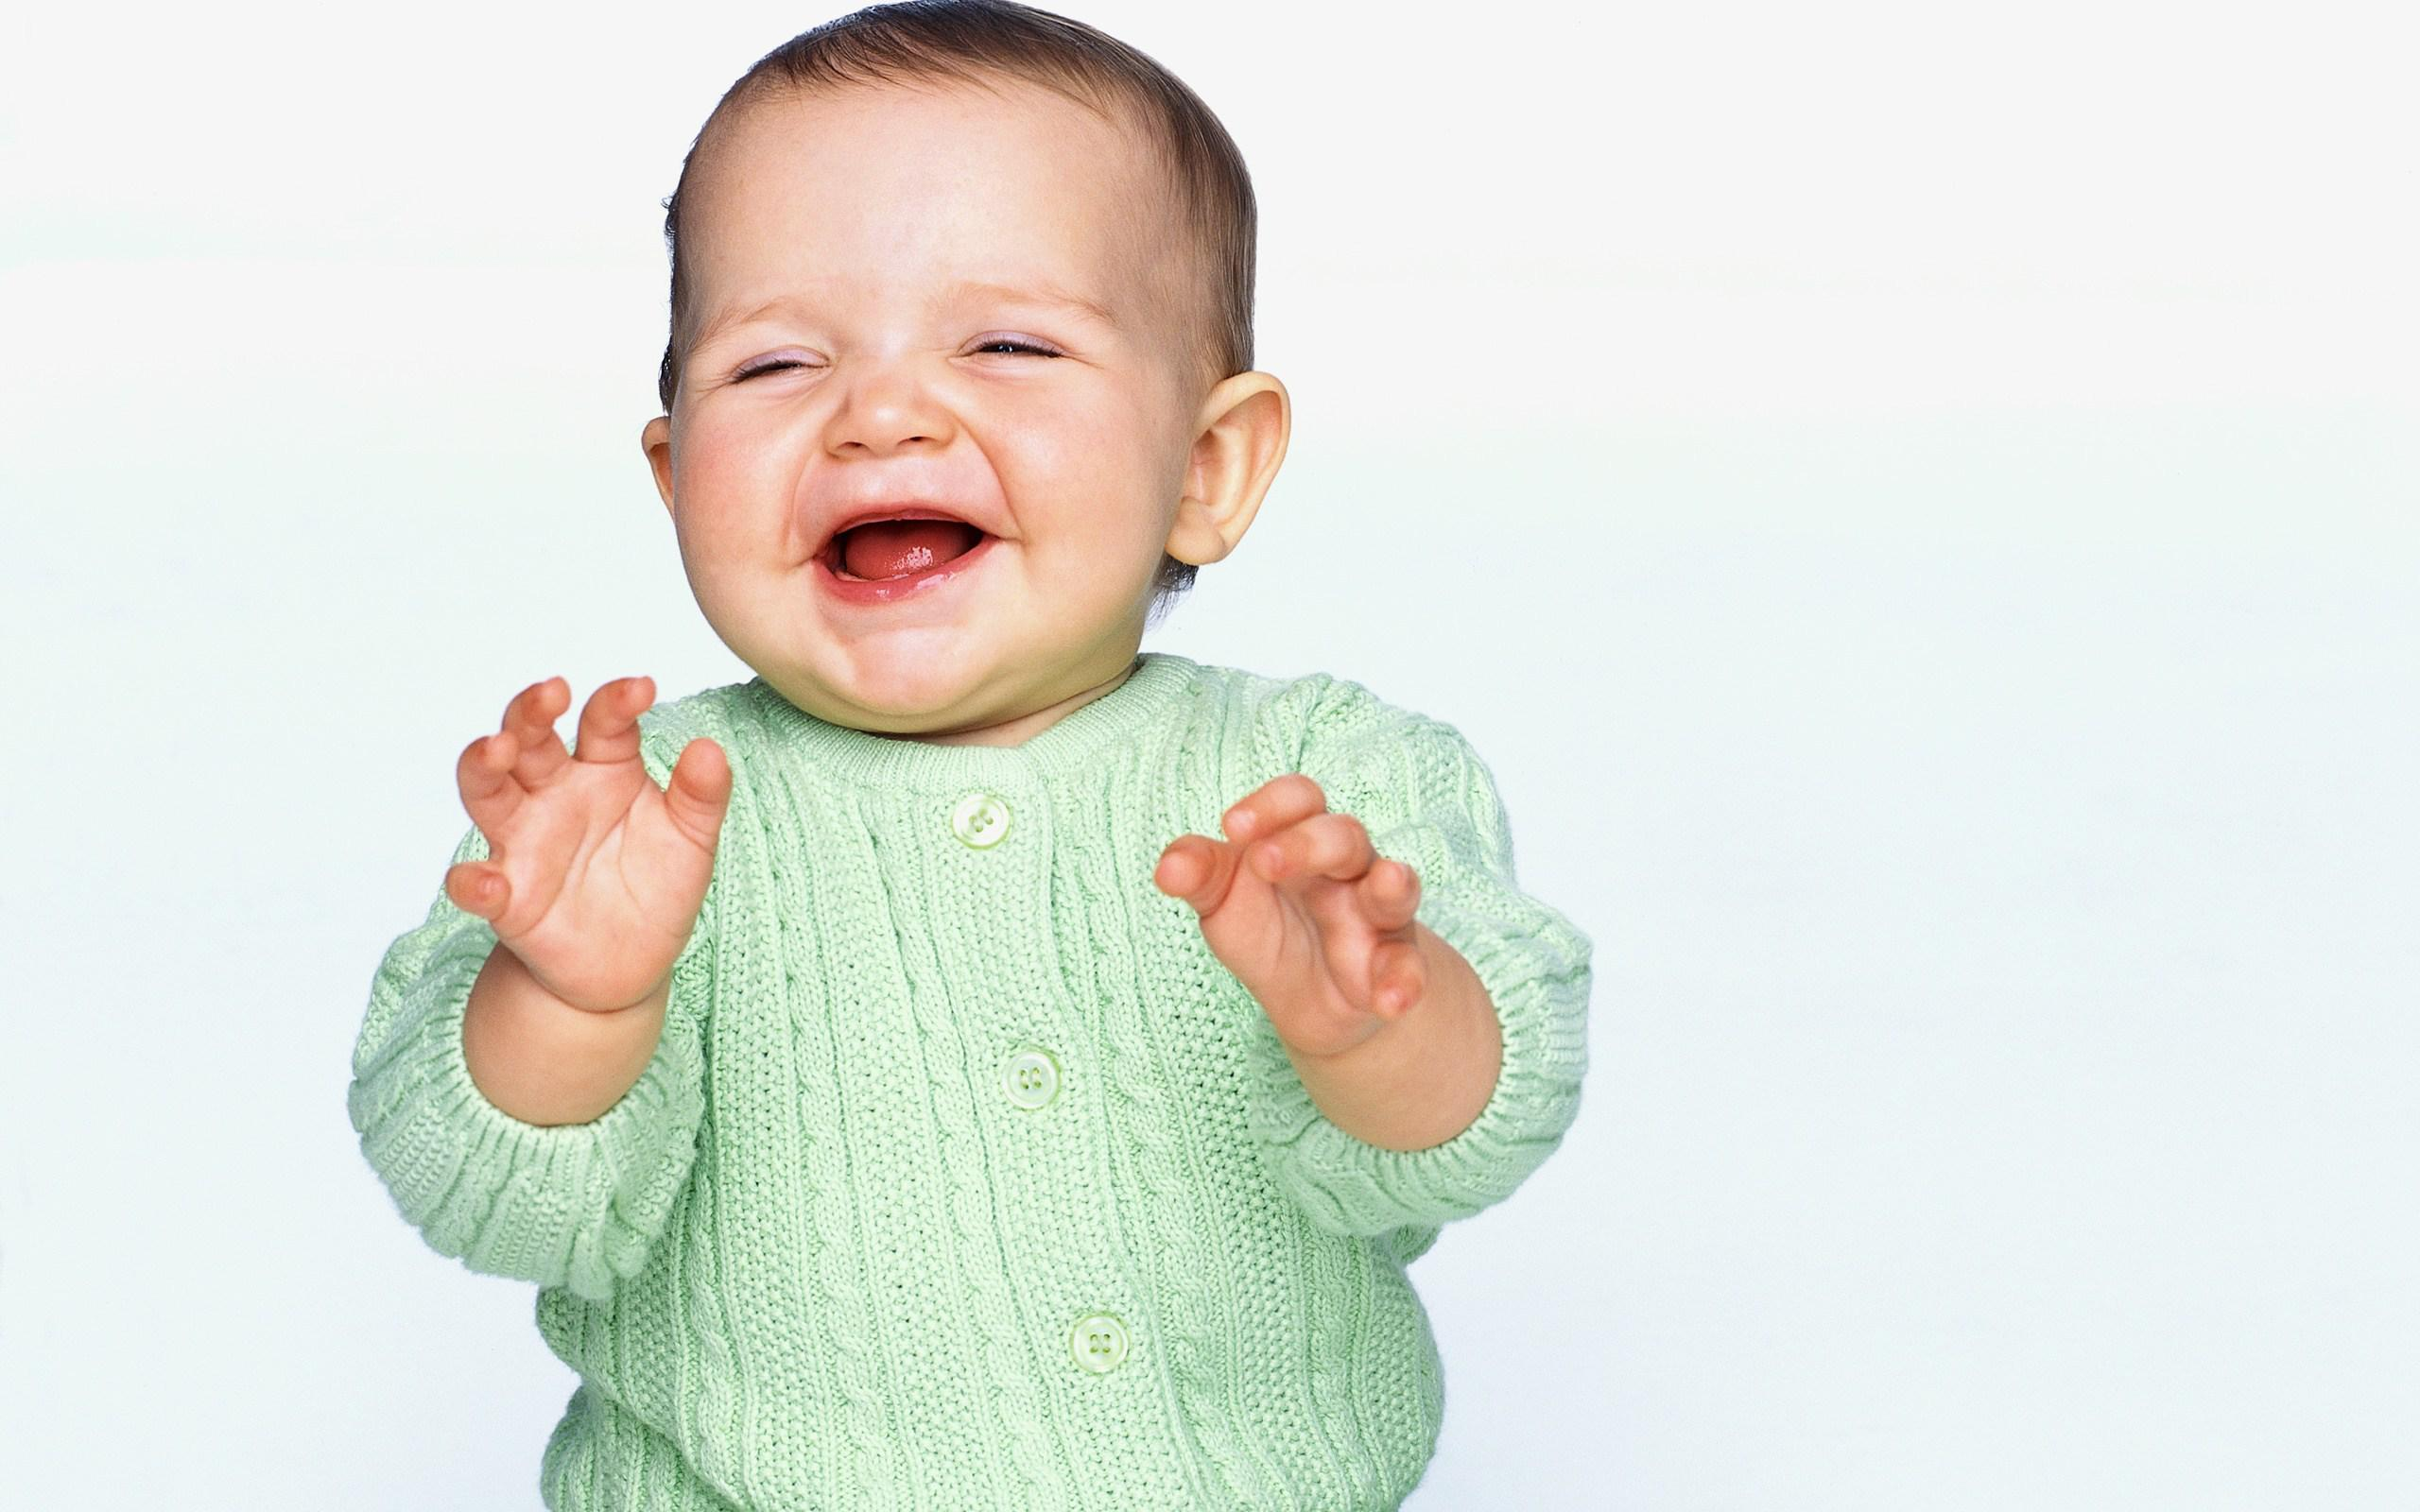 3d Wallpaper Squares Hd Baby Laughing Widescreen Wallpaper Download Free 139498